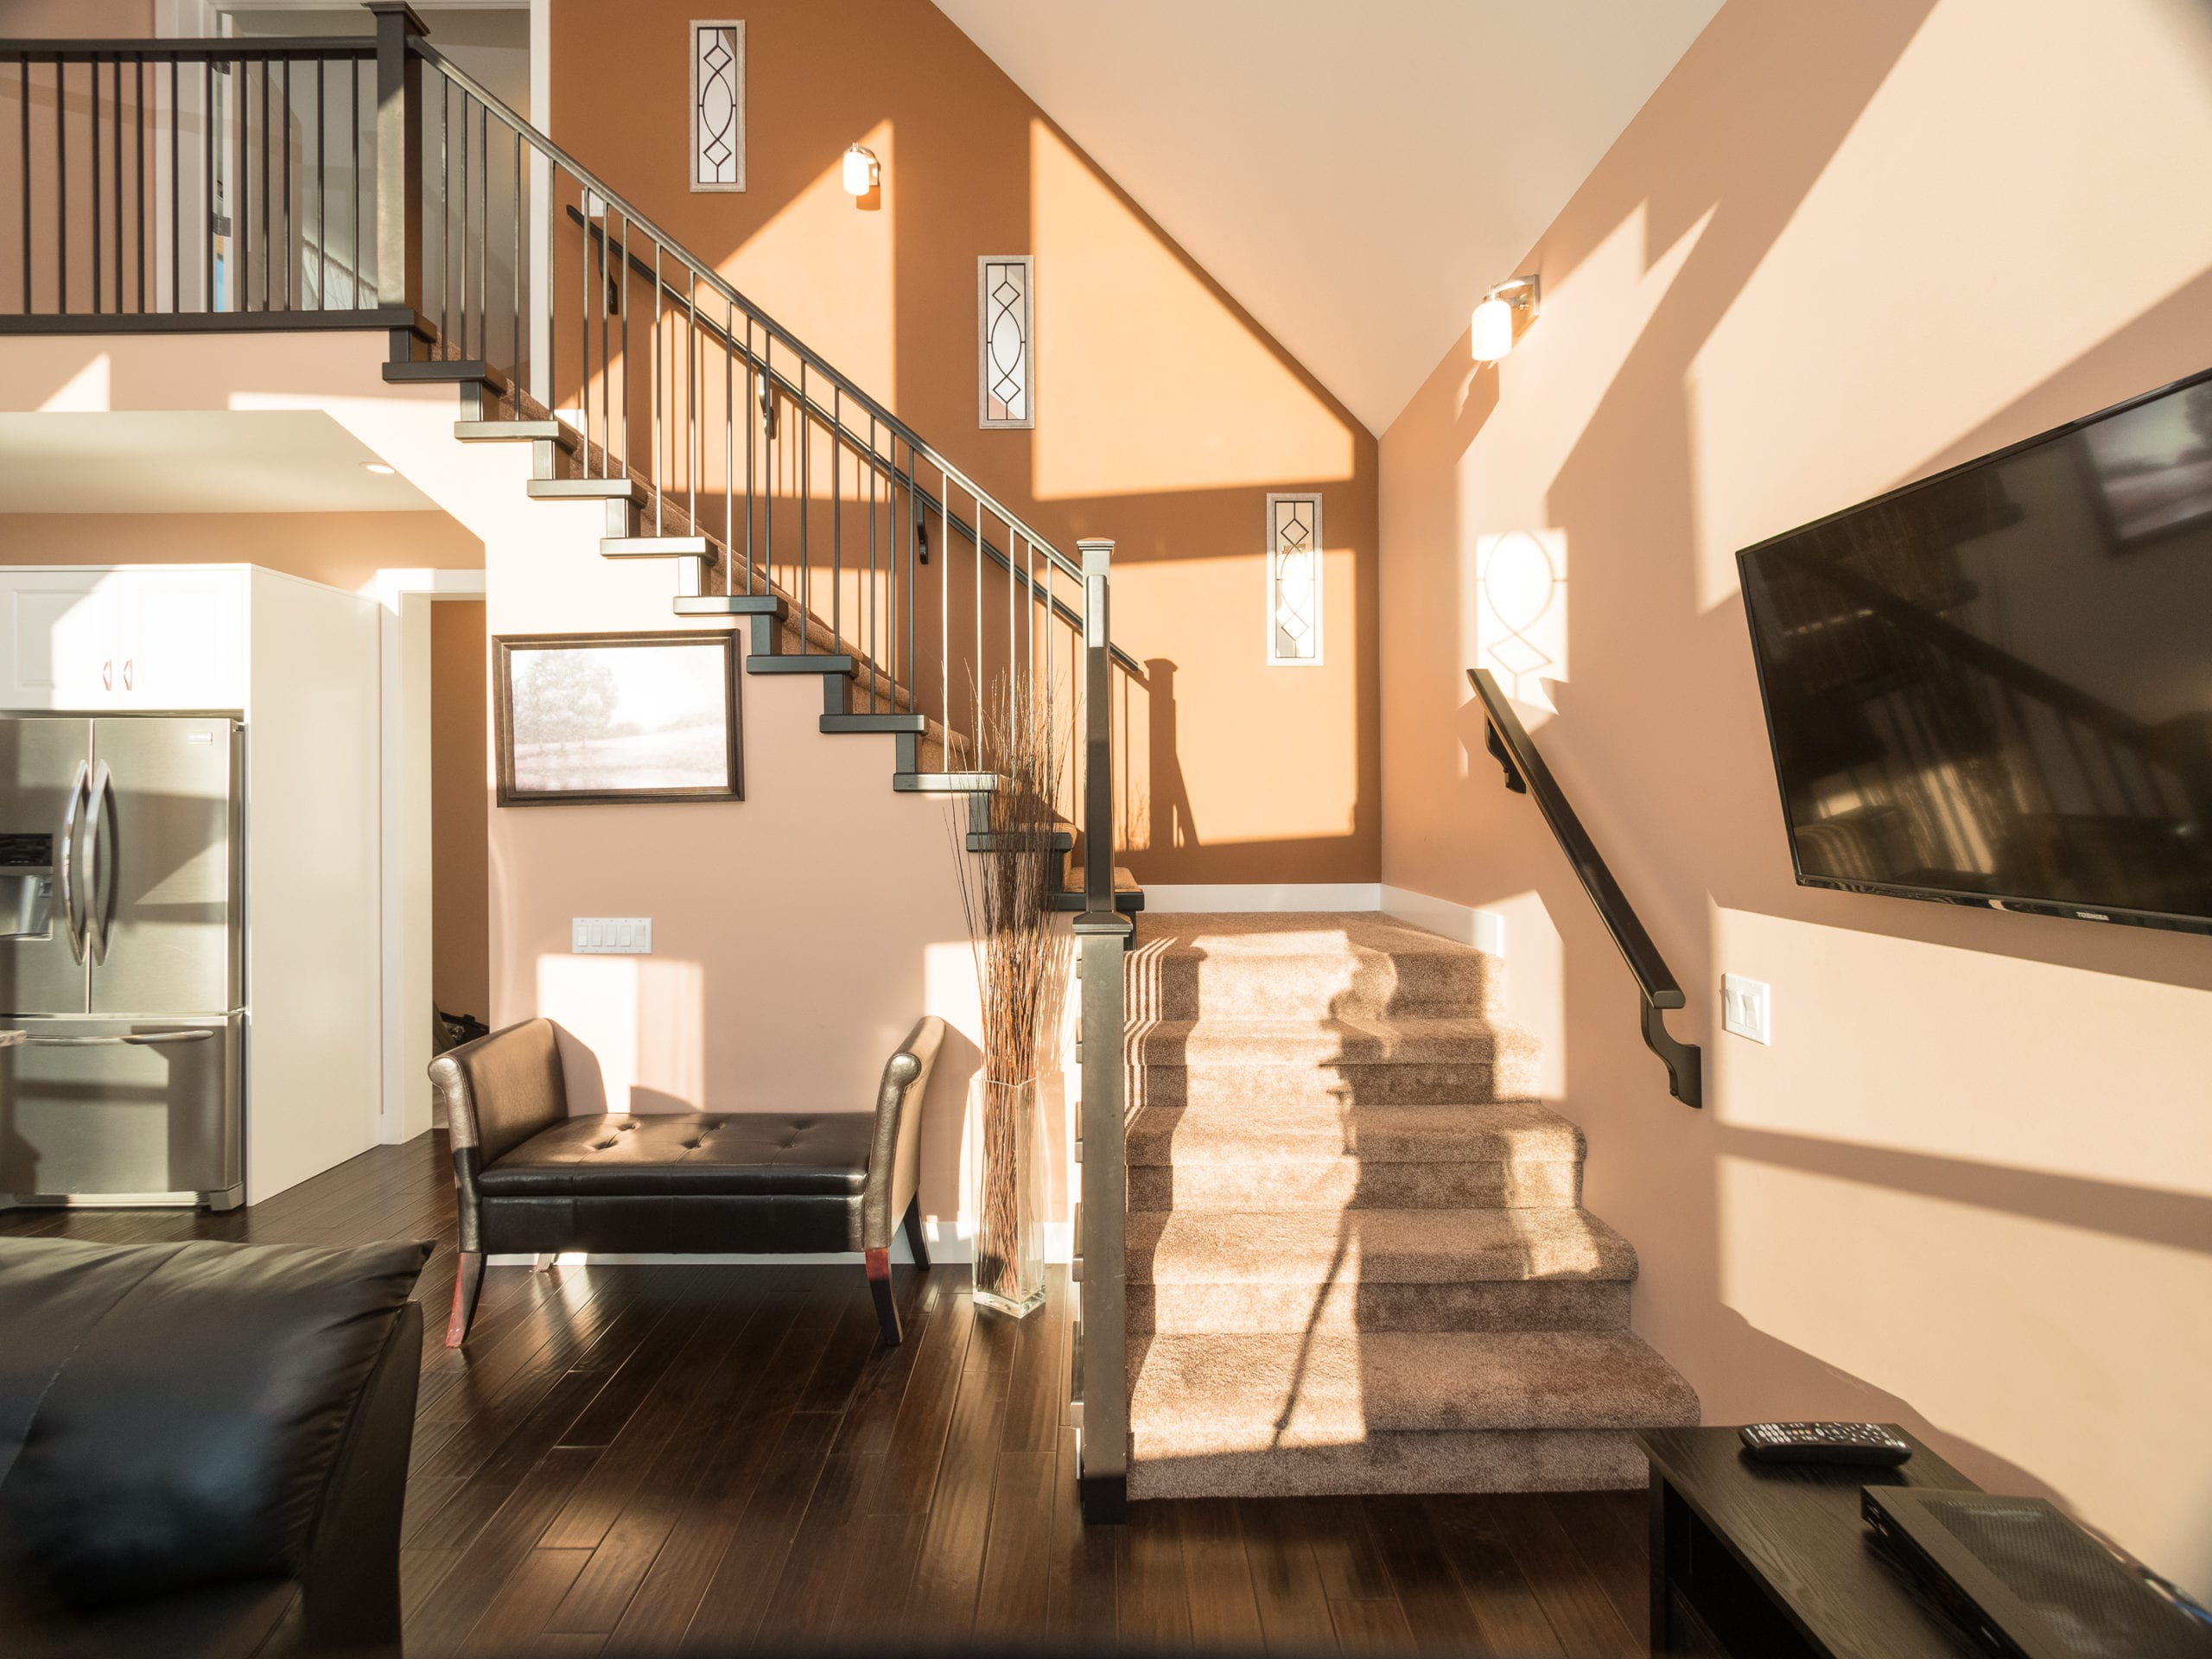 Hello Gorgeous - 456 Cottageclub Cove, Rocky View No. 44, AB - Tara Molina Real Estate (22 of 41)